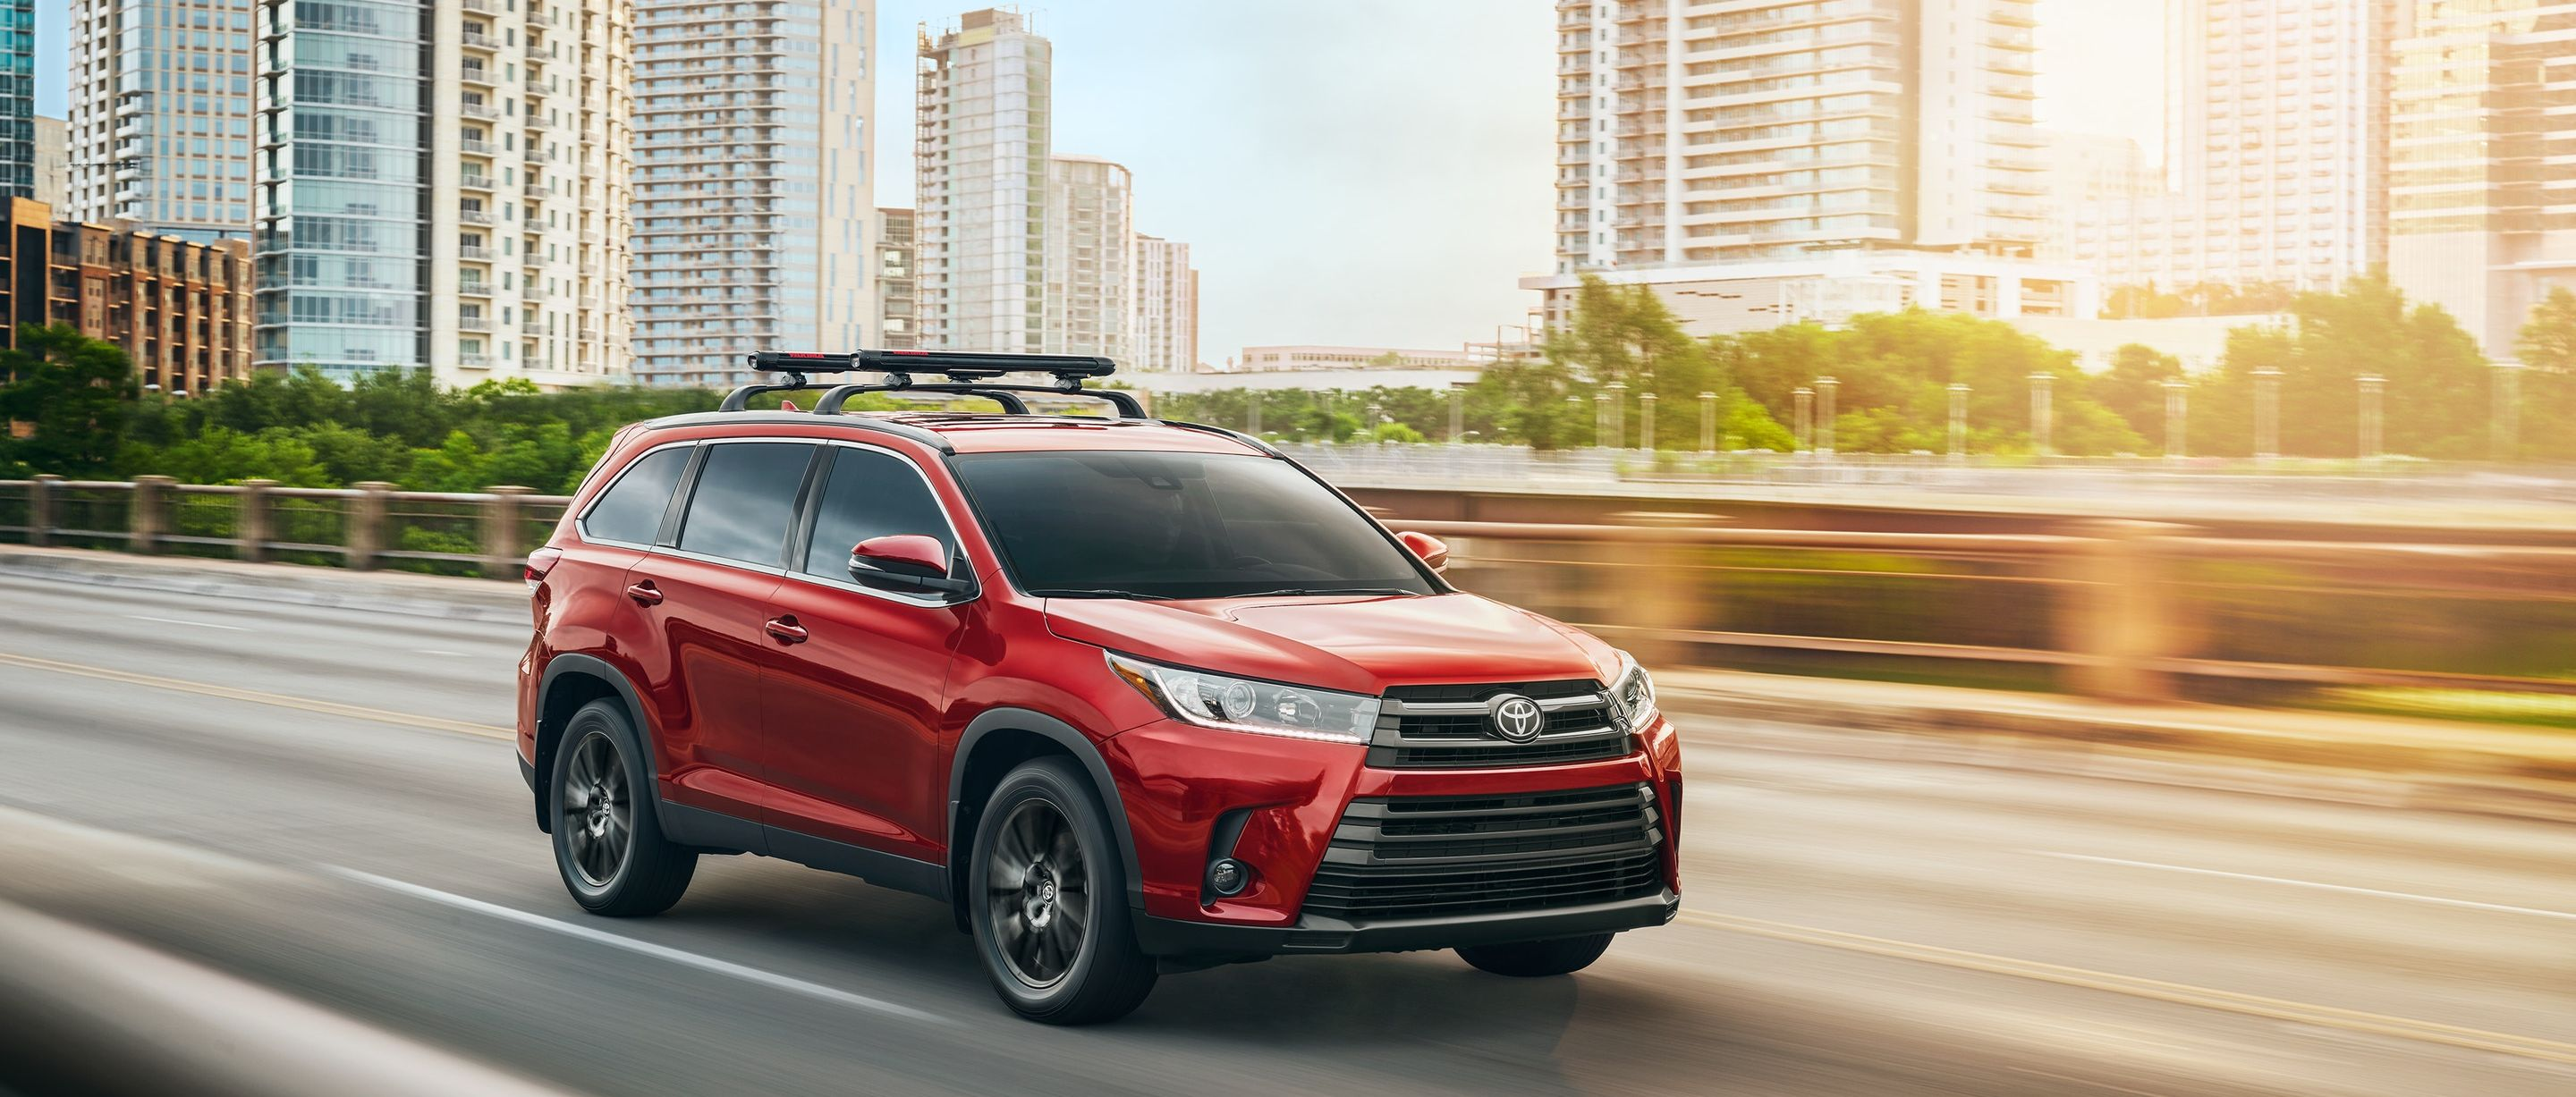 2019 Toyota Highlander Leasing near Stamford, CT